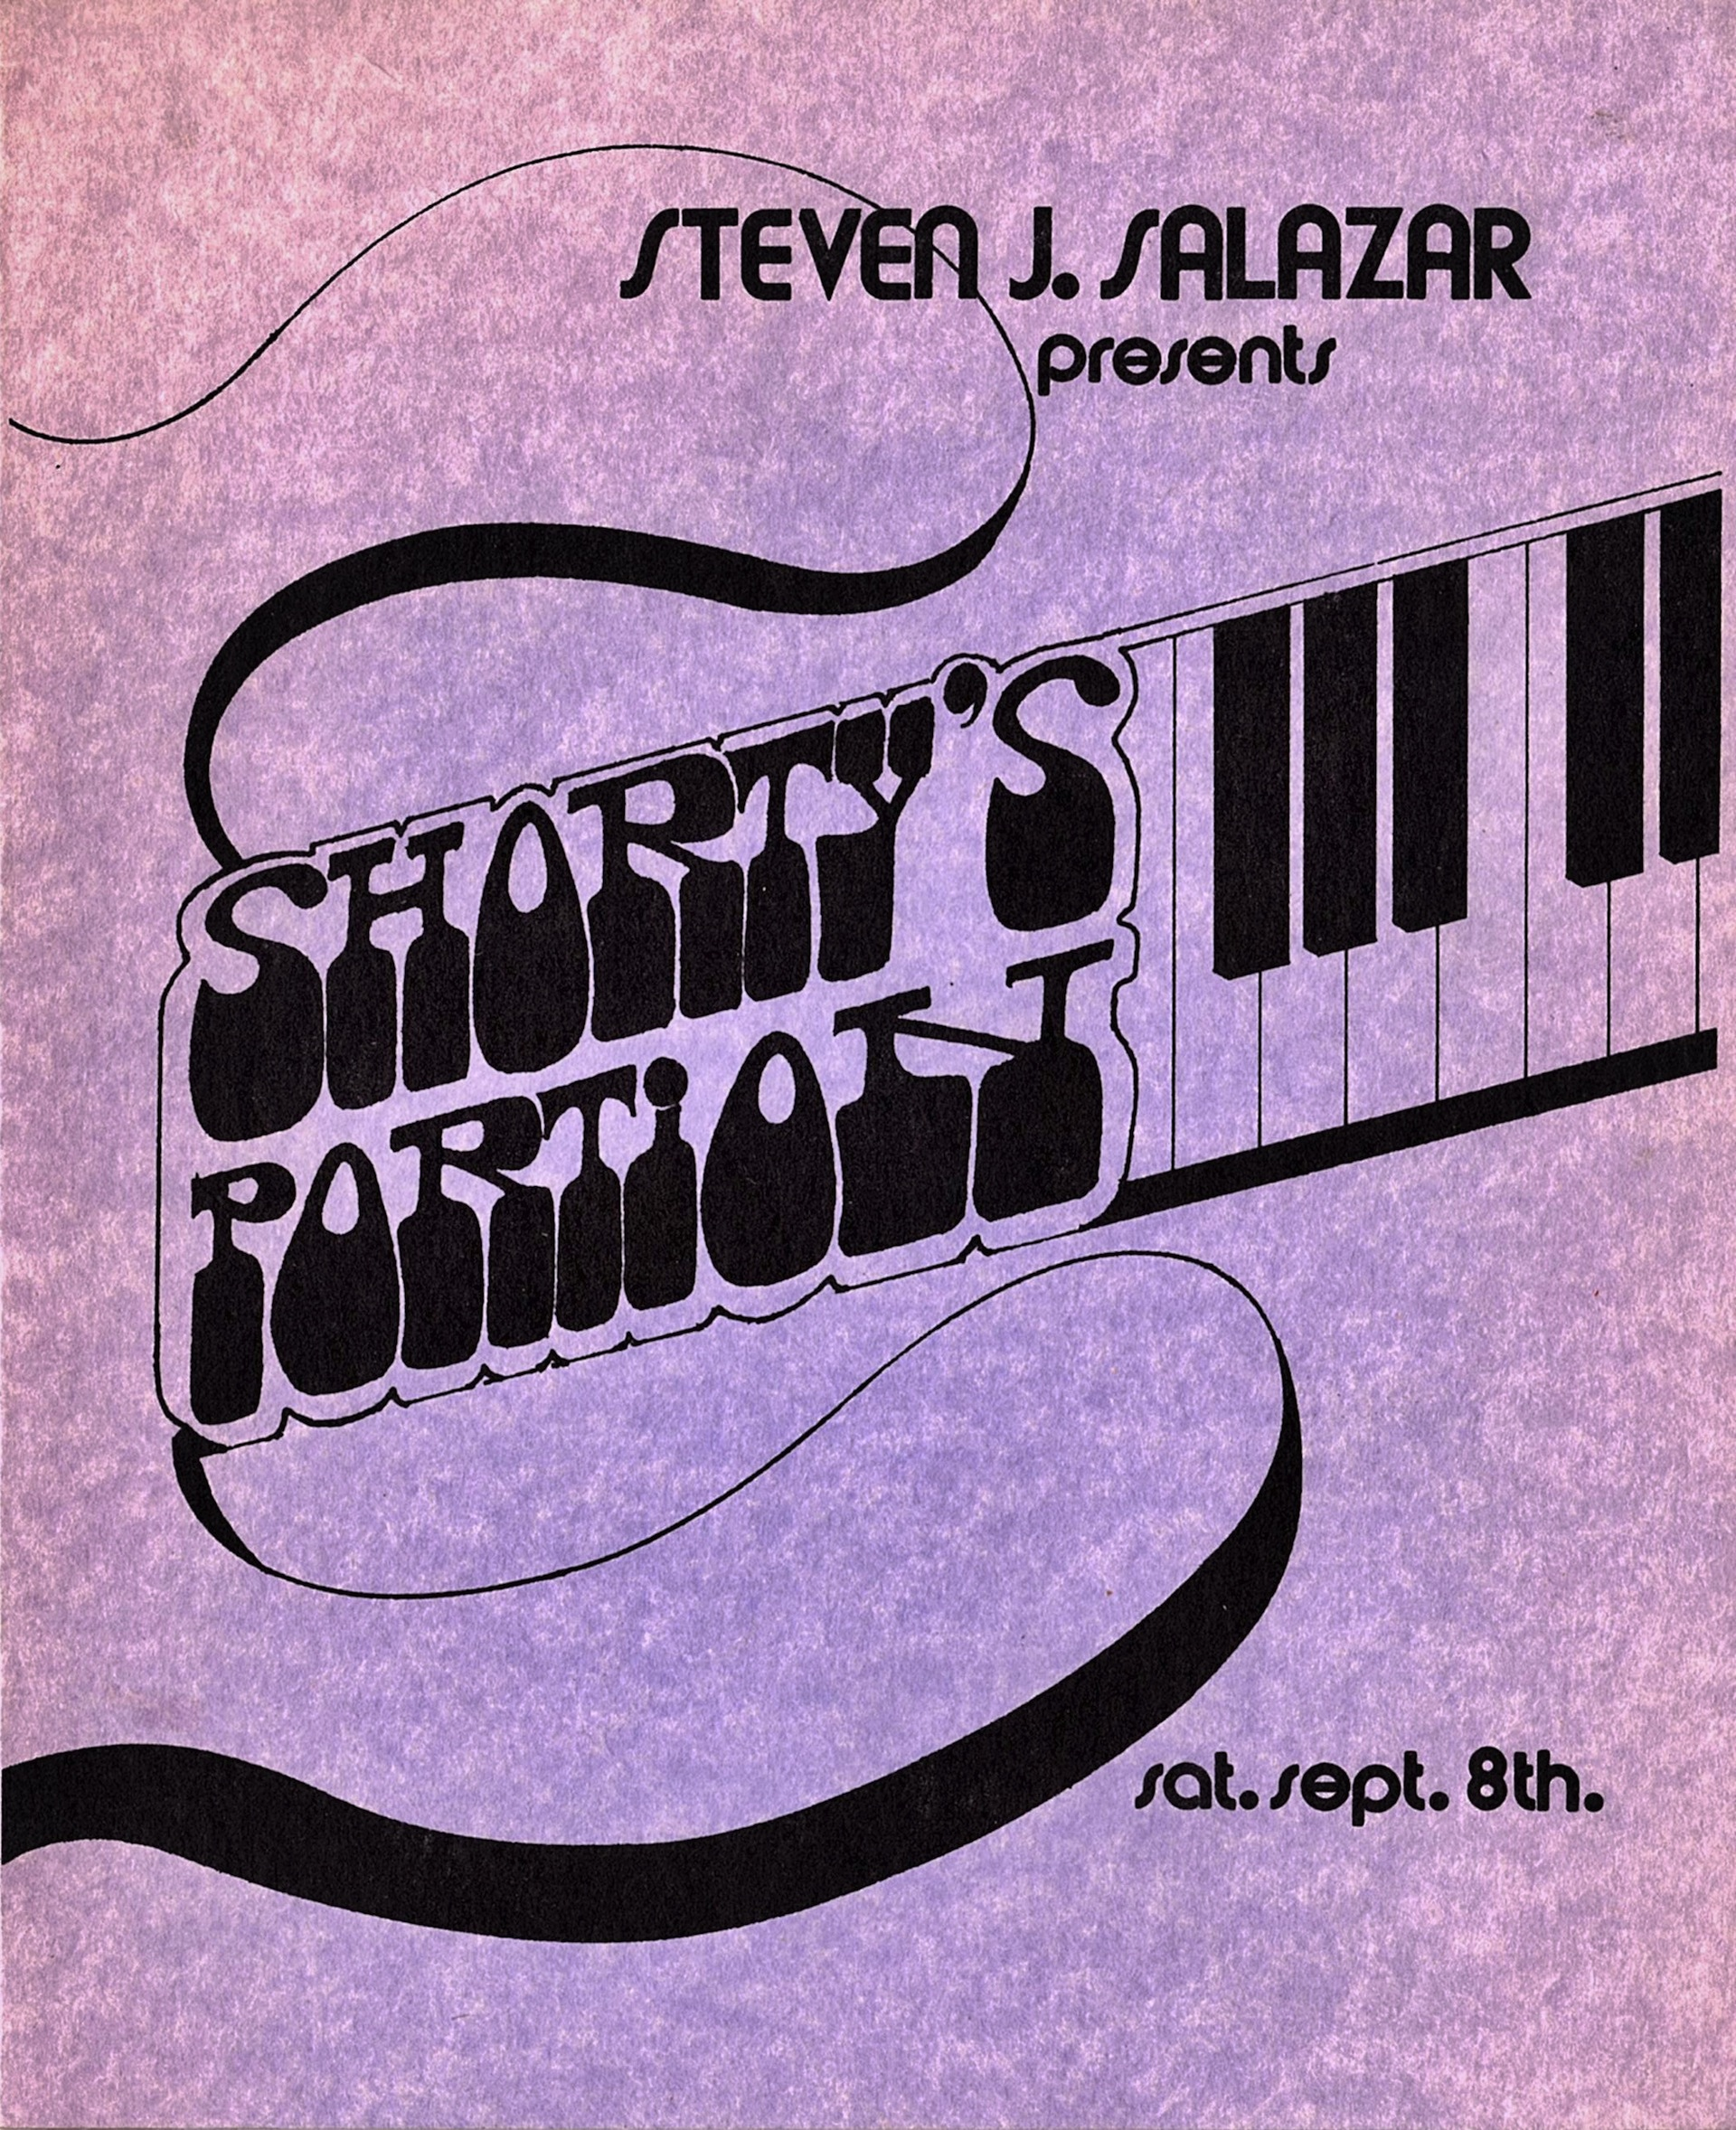 Program cover for Steven J. Salazar's 1973 San Gabriel Civic Auditorium performance.